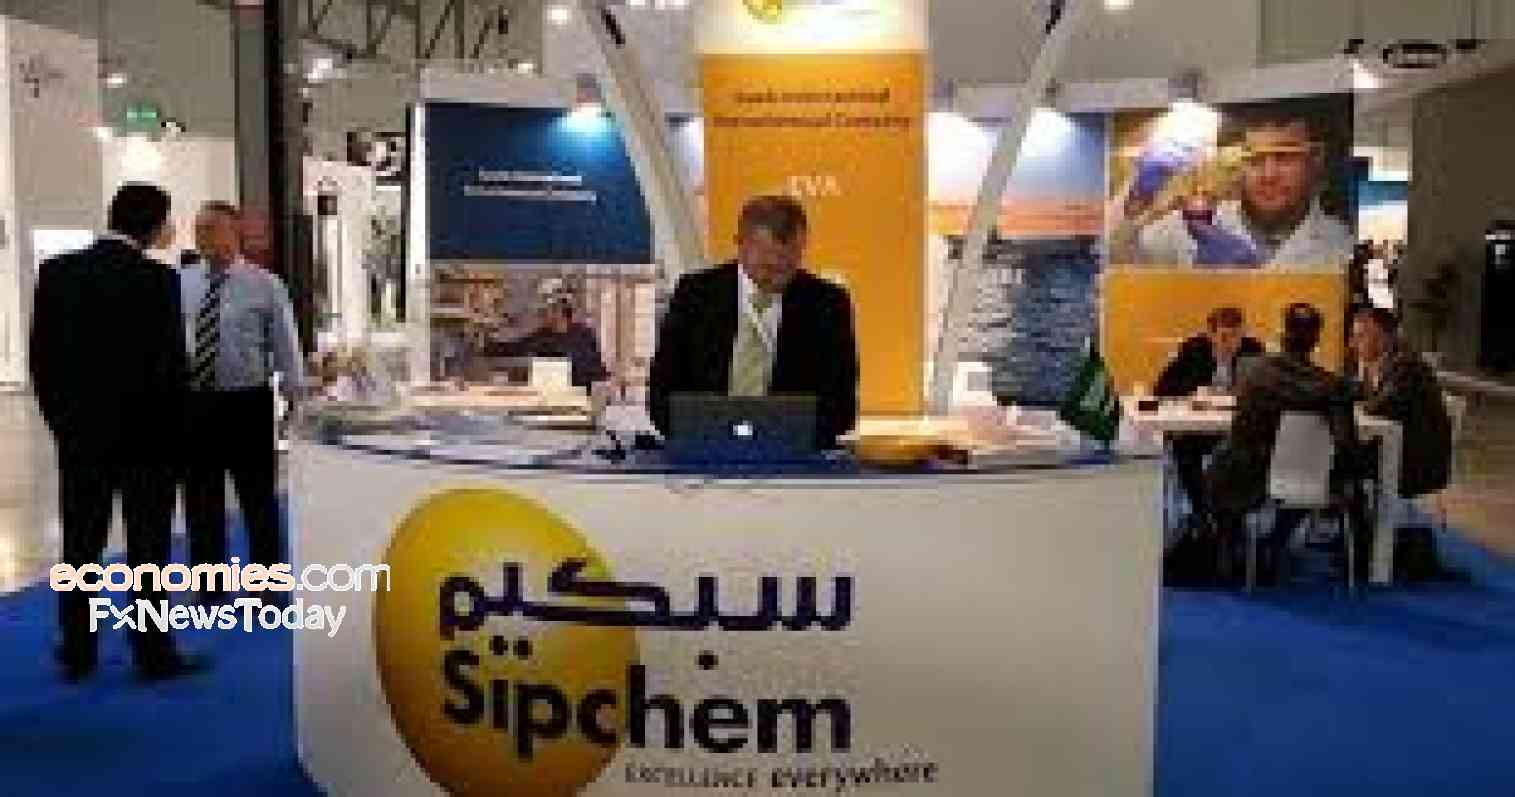 Sipchem posts 48% profit rise in Q3 on stronger revenues